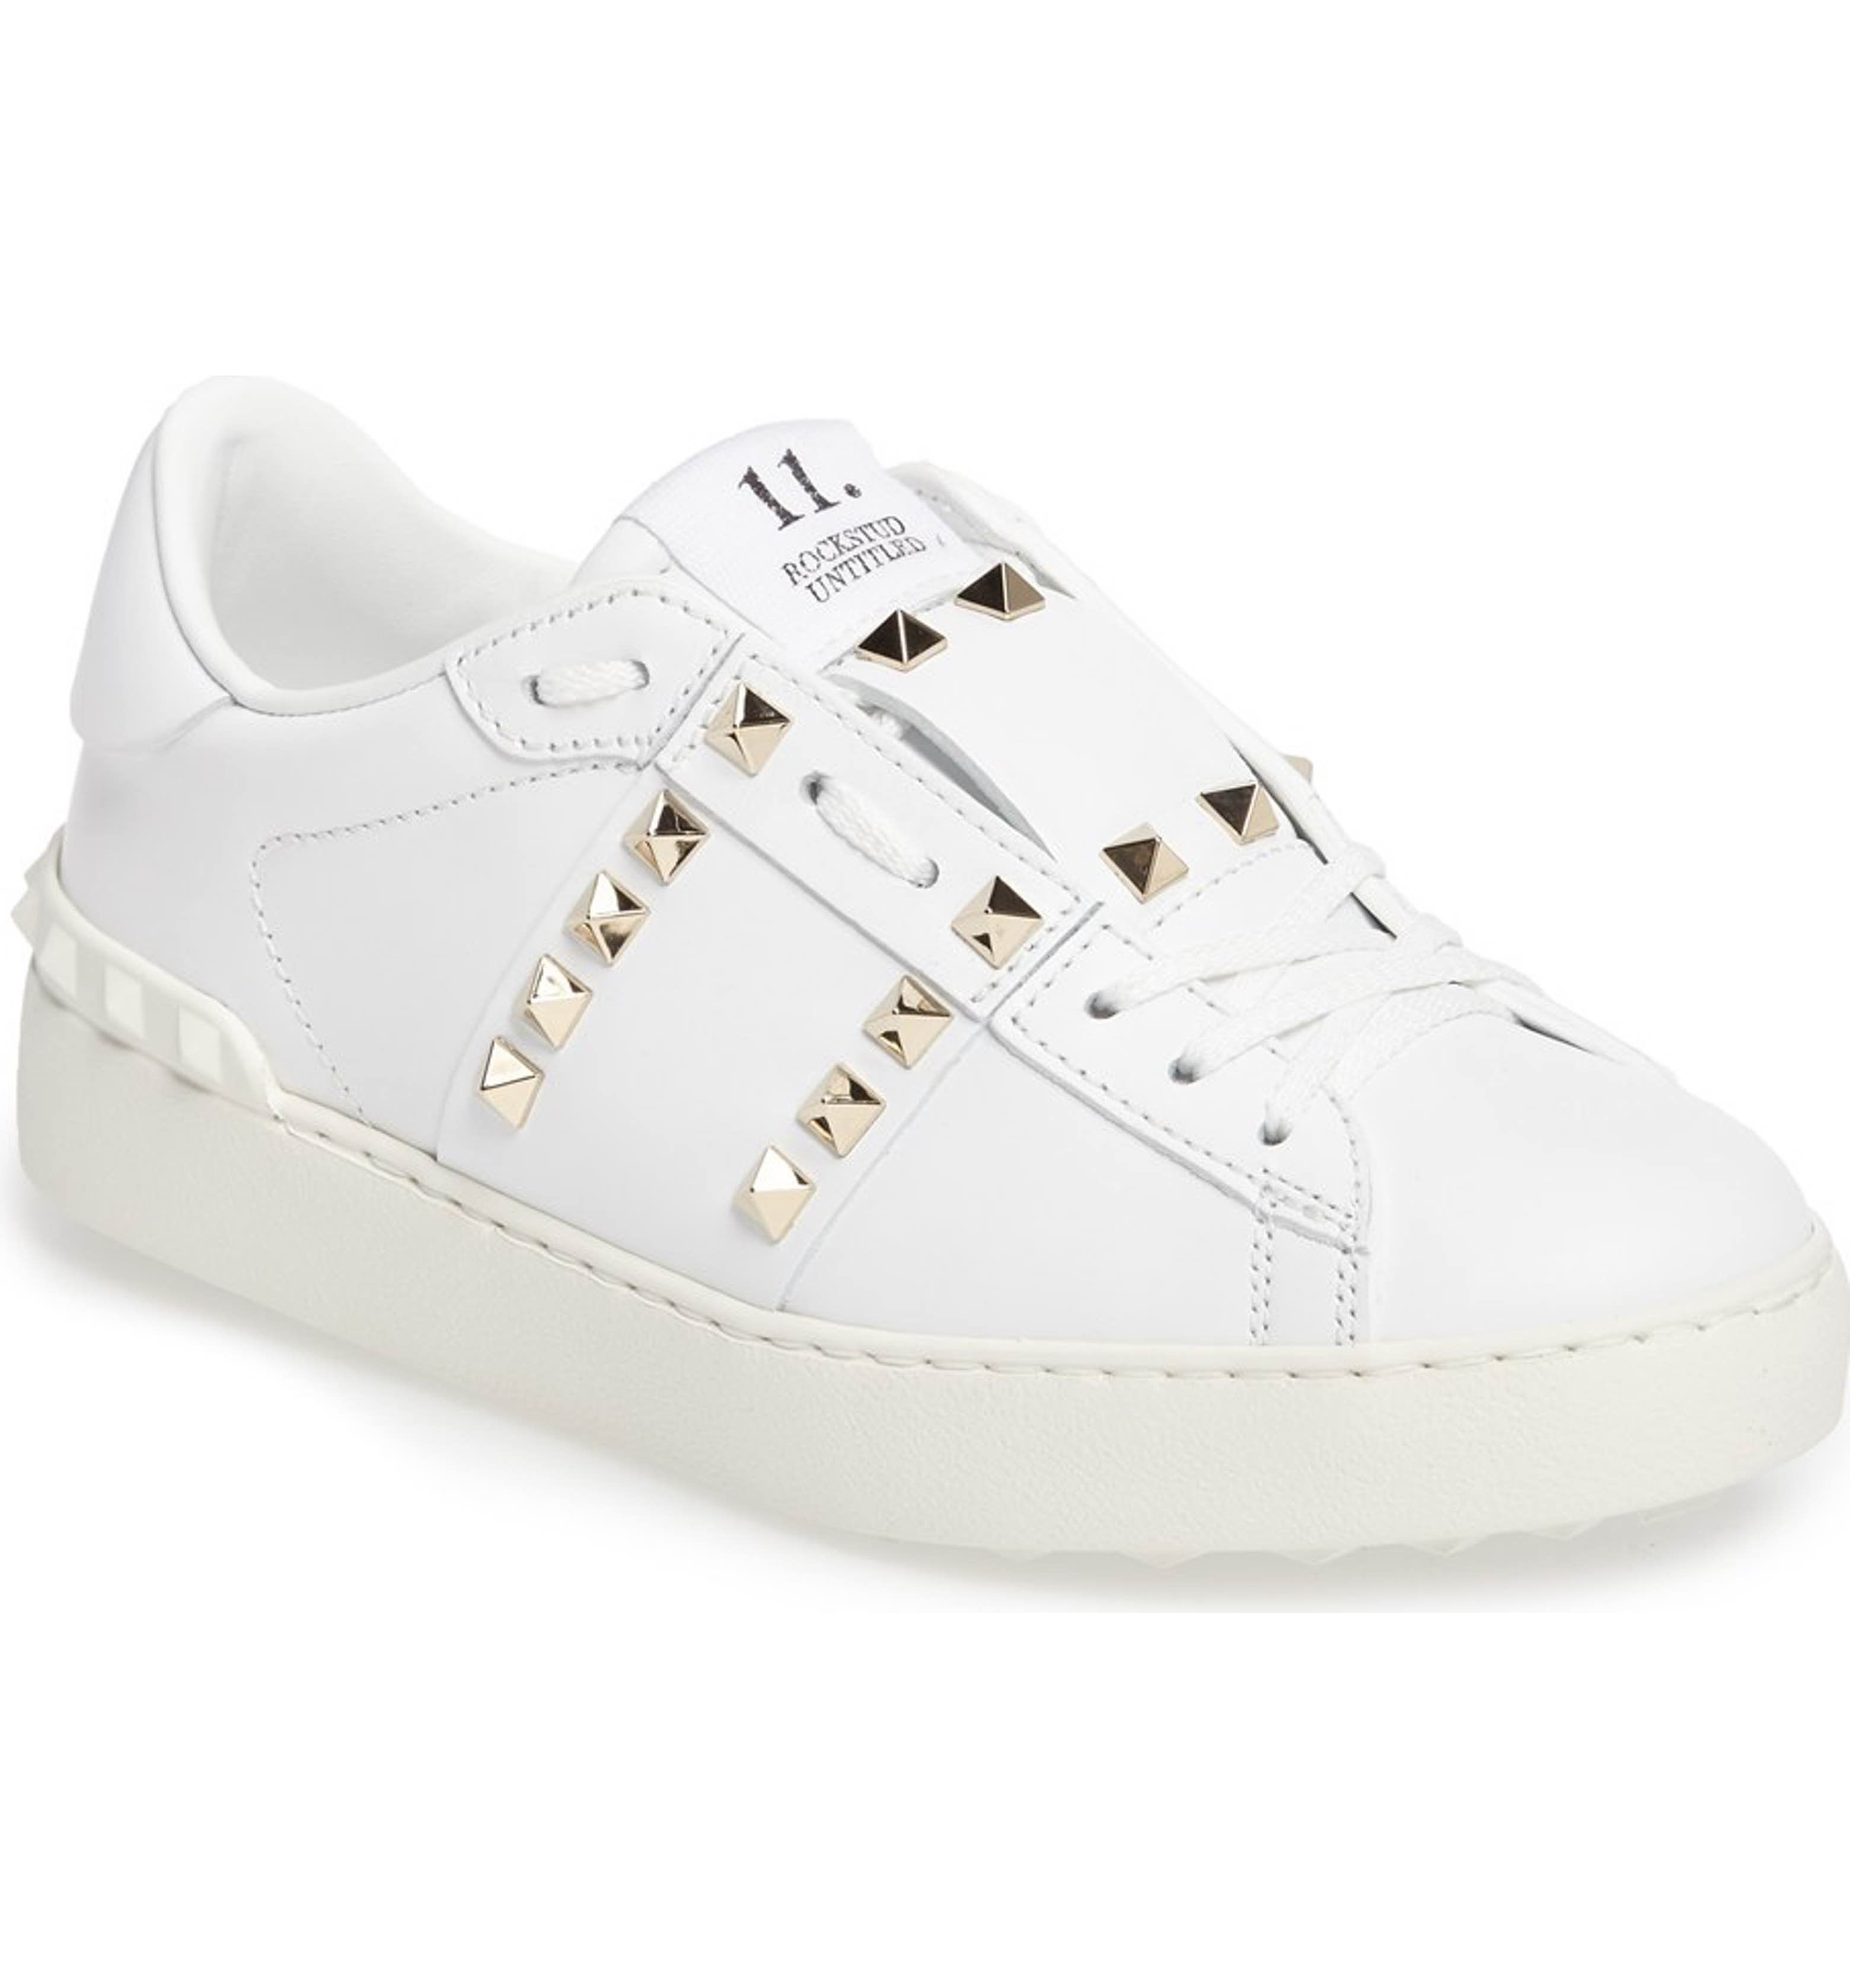 LADIES WOMENS ROCK STUD LACE UP TRAINERS SNEAKERS FASHION PLIMSOLLS GIRLS SHOES